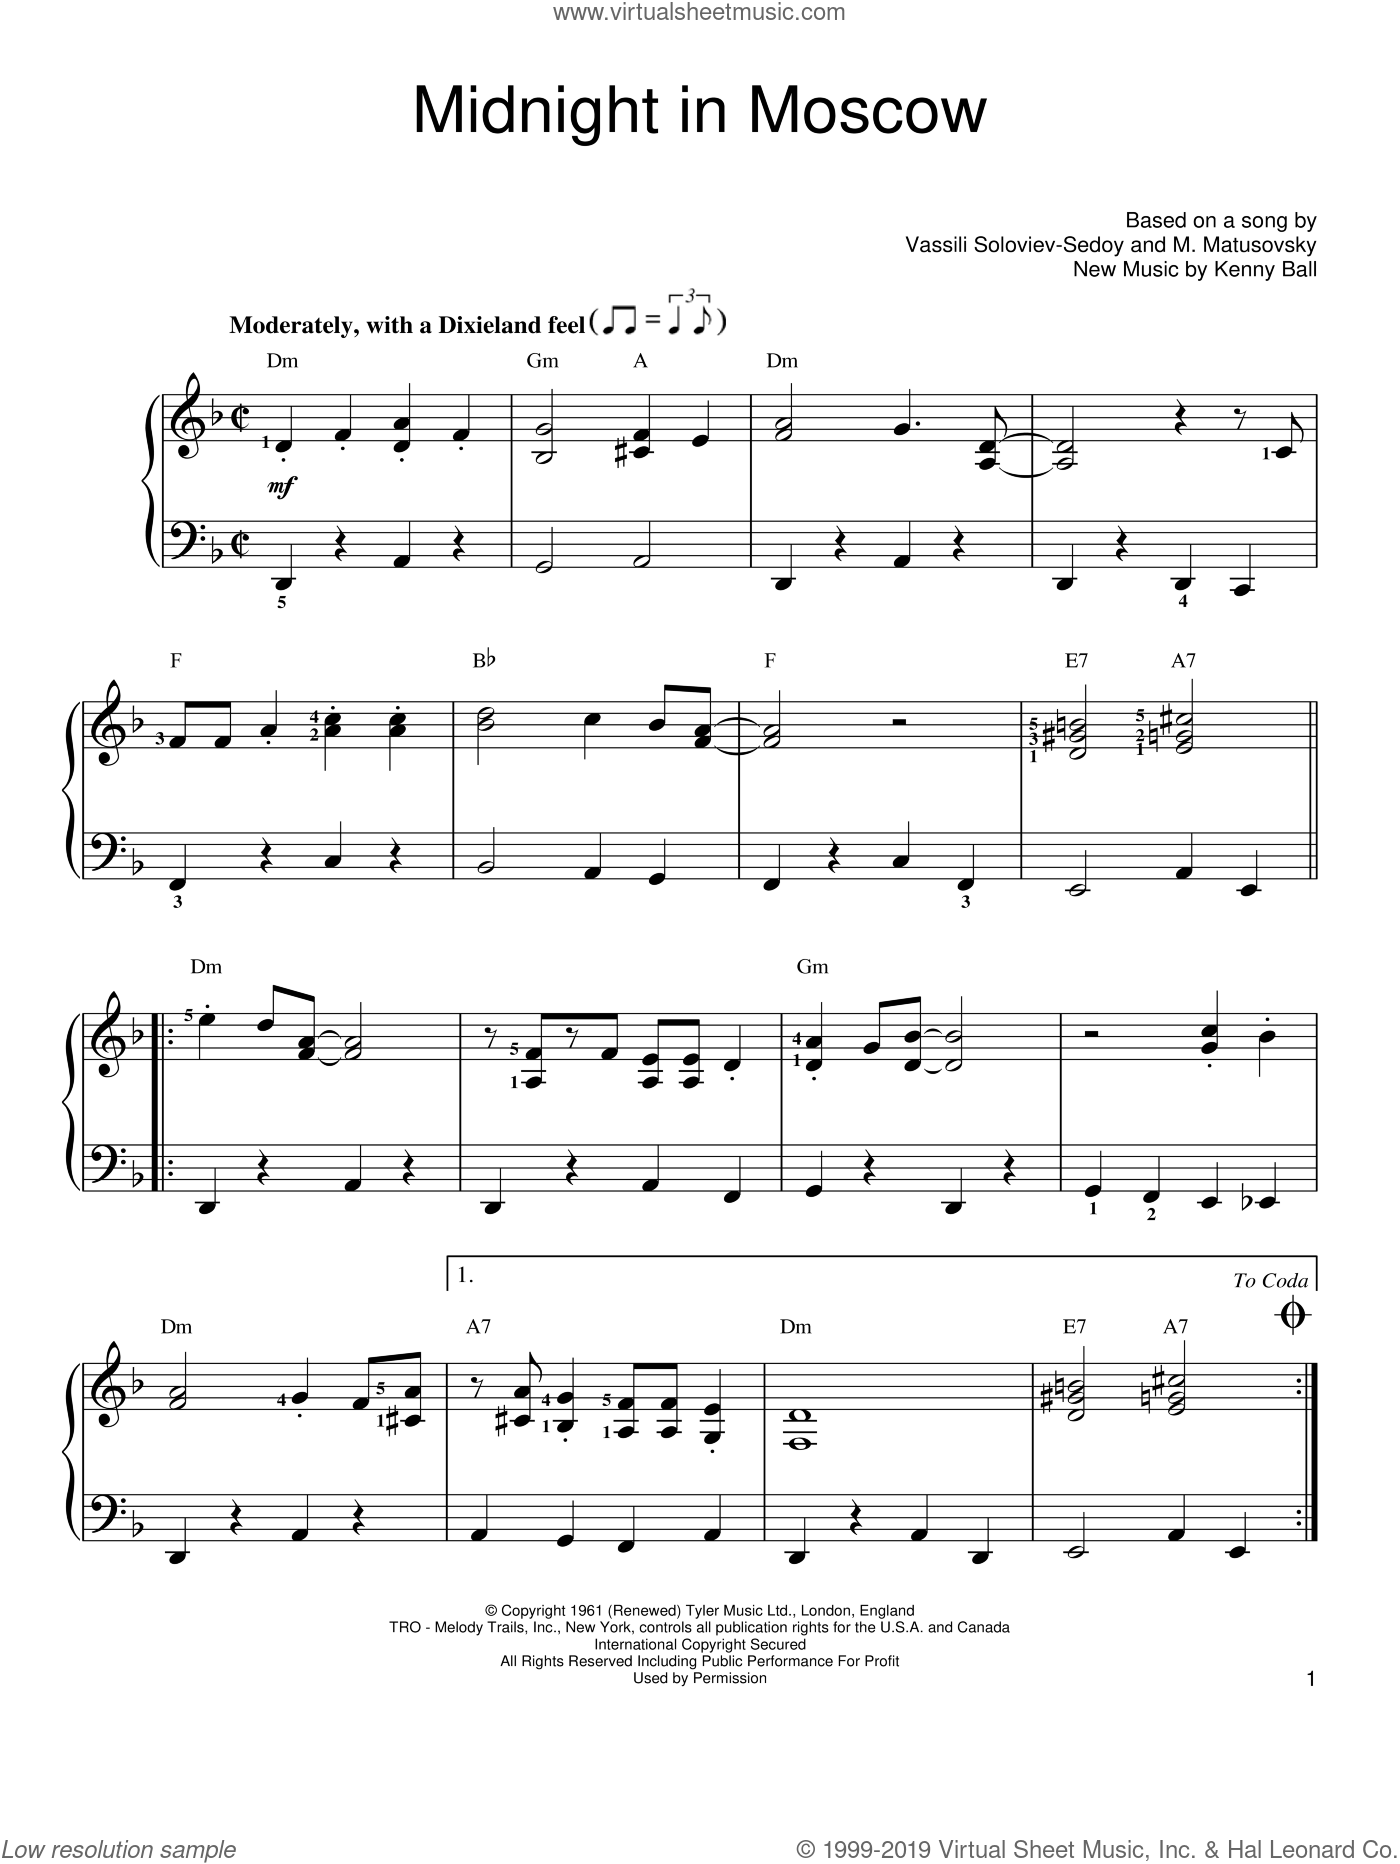 Midnight In Moscow sheet music for piano solo by Kenny Ball